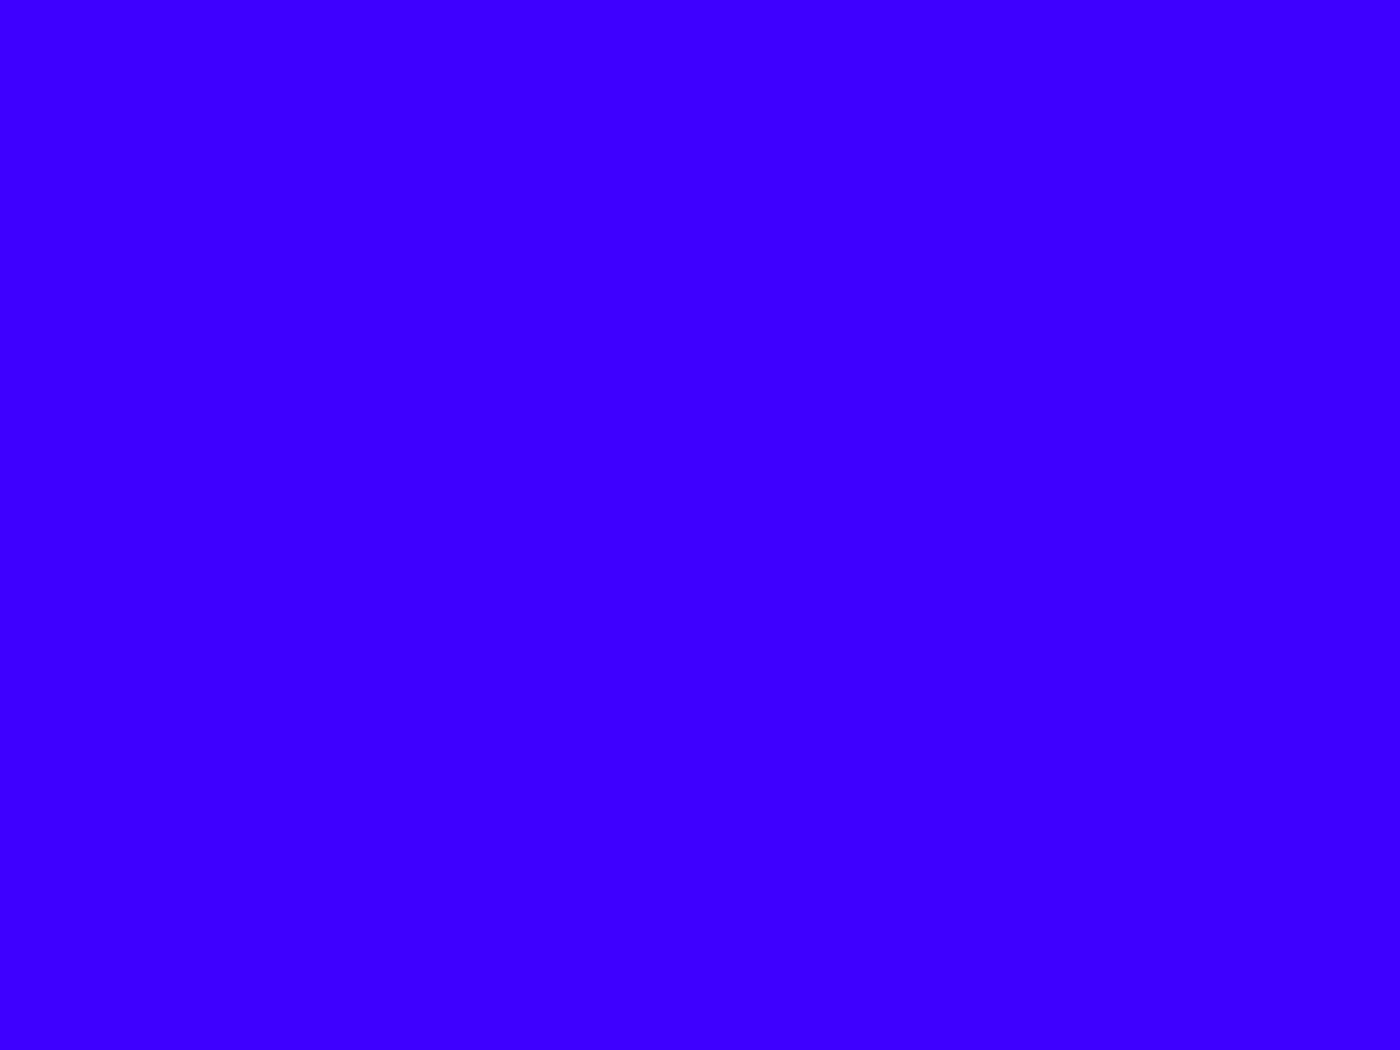 1400x1050 Electric Ultramarine Solid Color Background